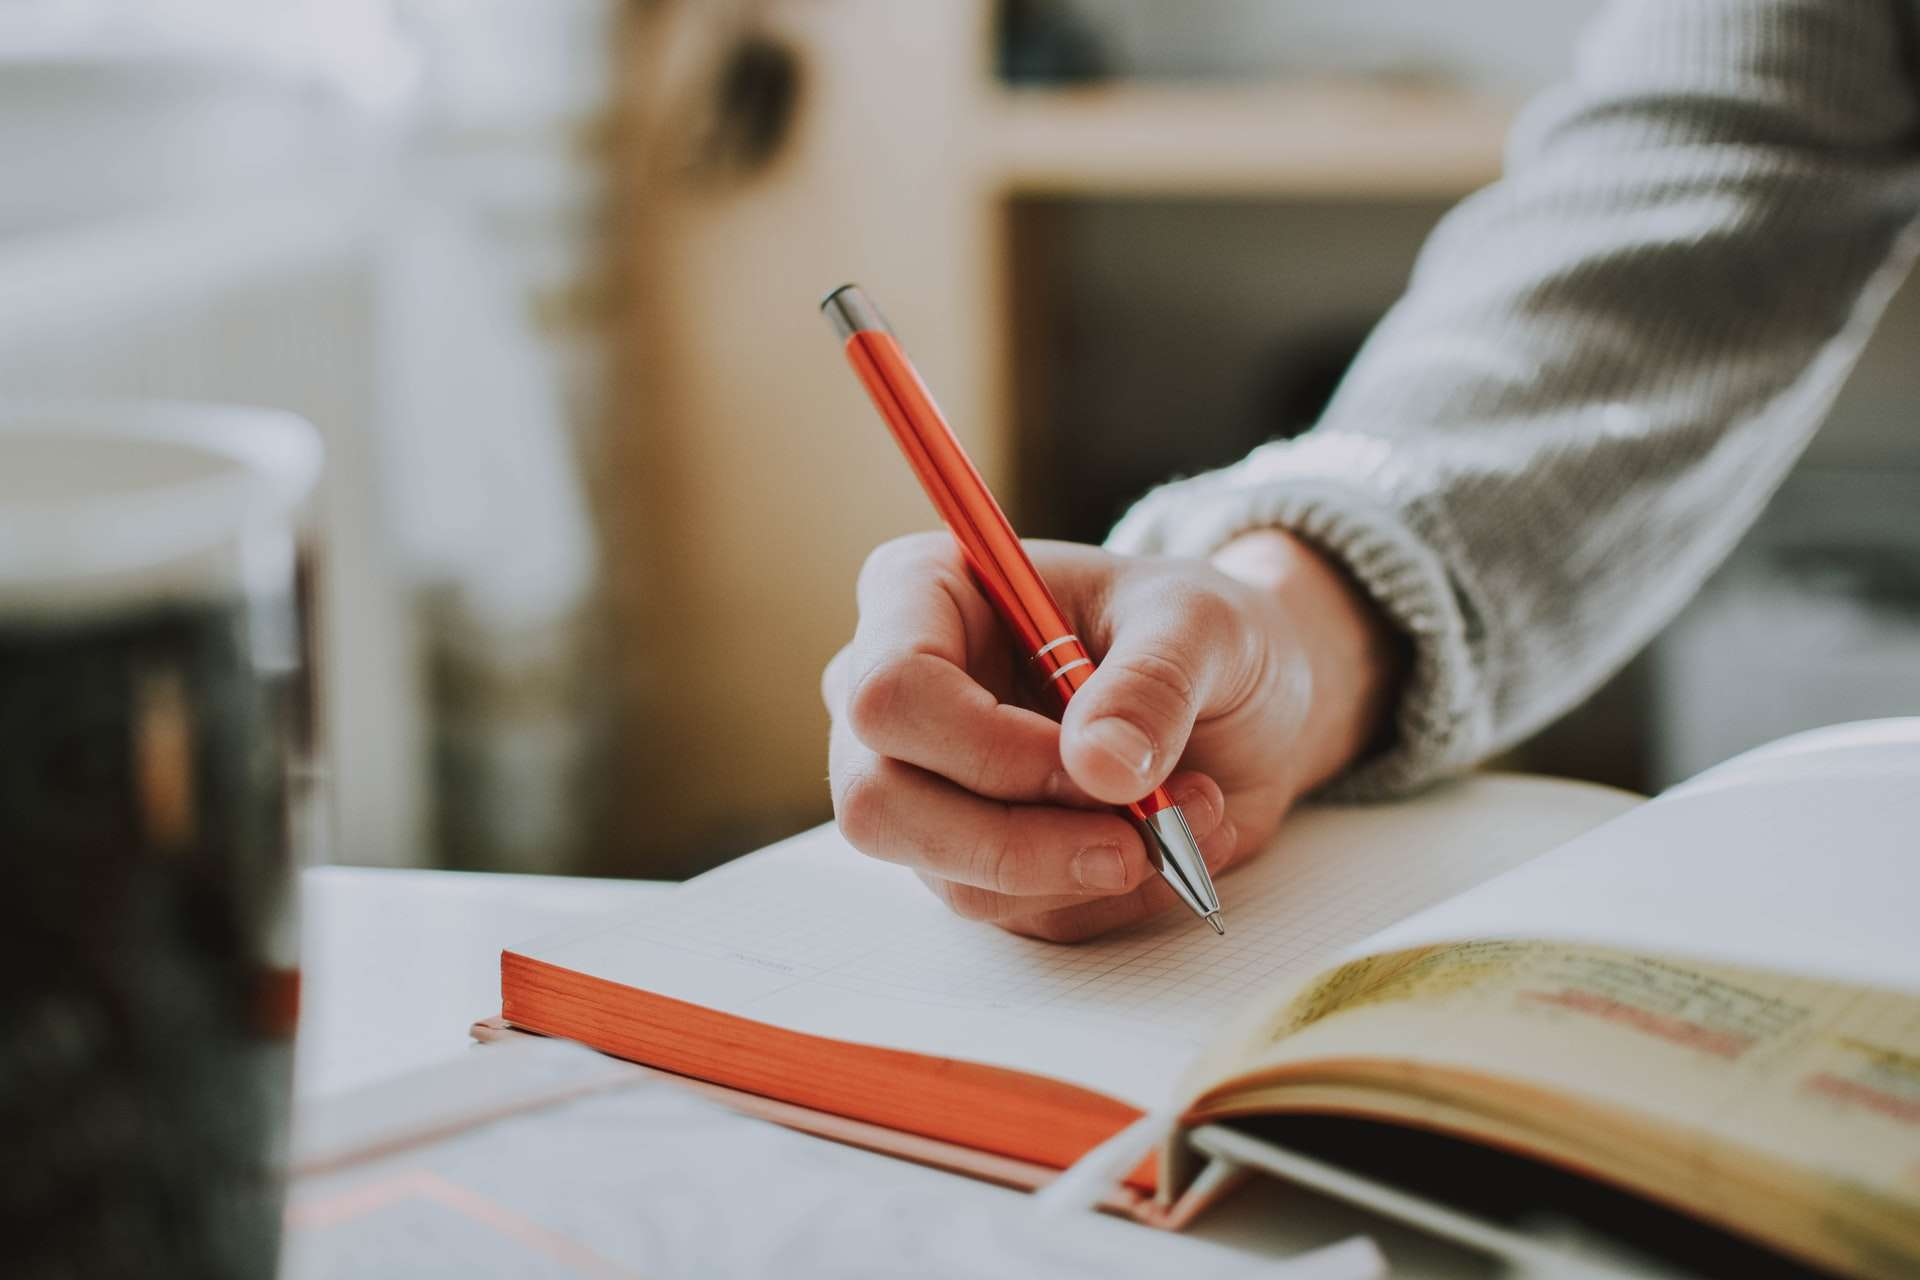 close-up of someone writing in a journal